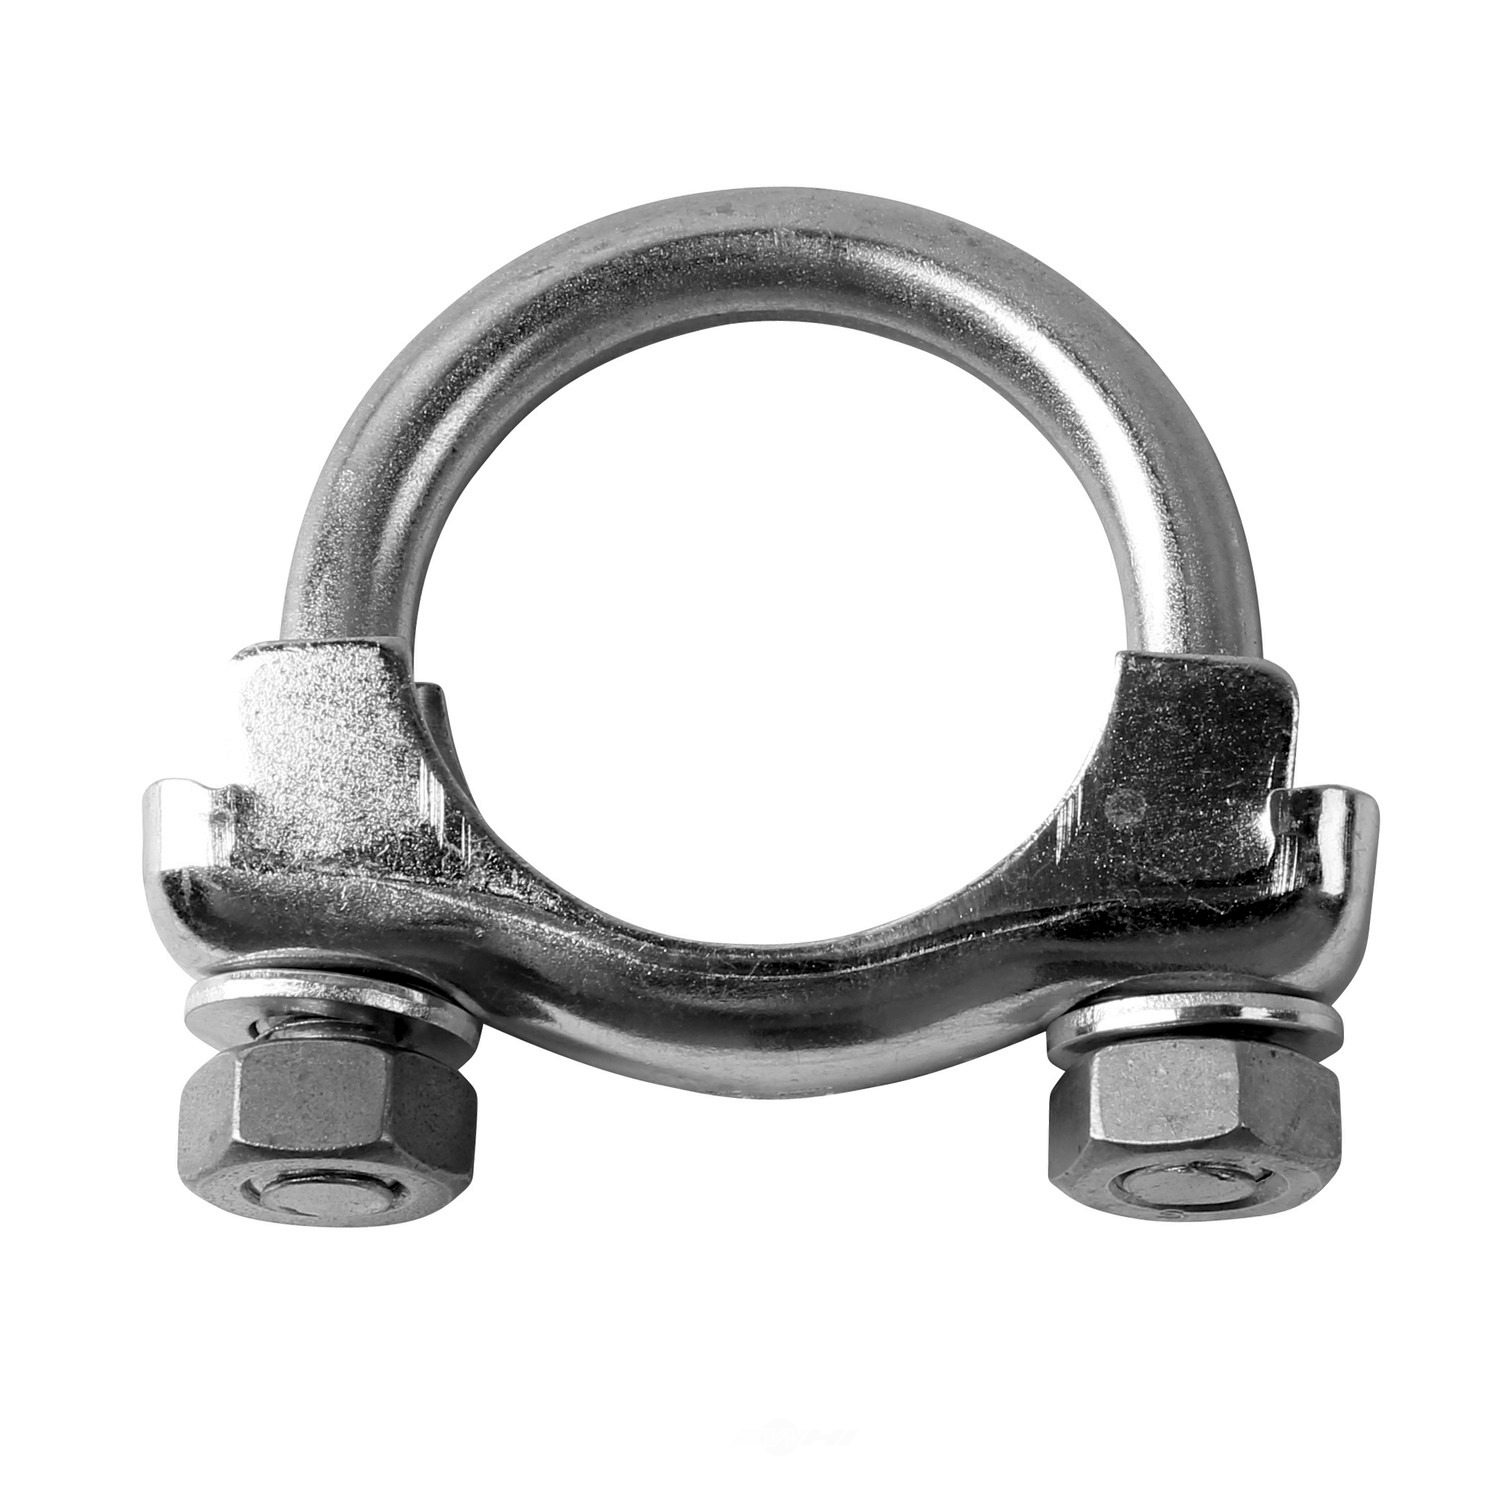 ANSA/SILVERLINE PRODUCTS - Exhaust Clamp - ANE HW4245